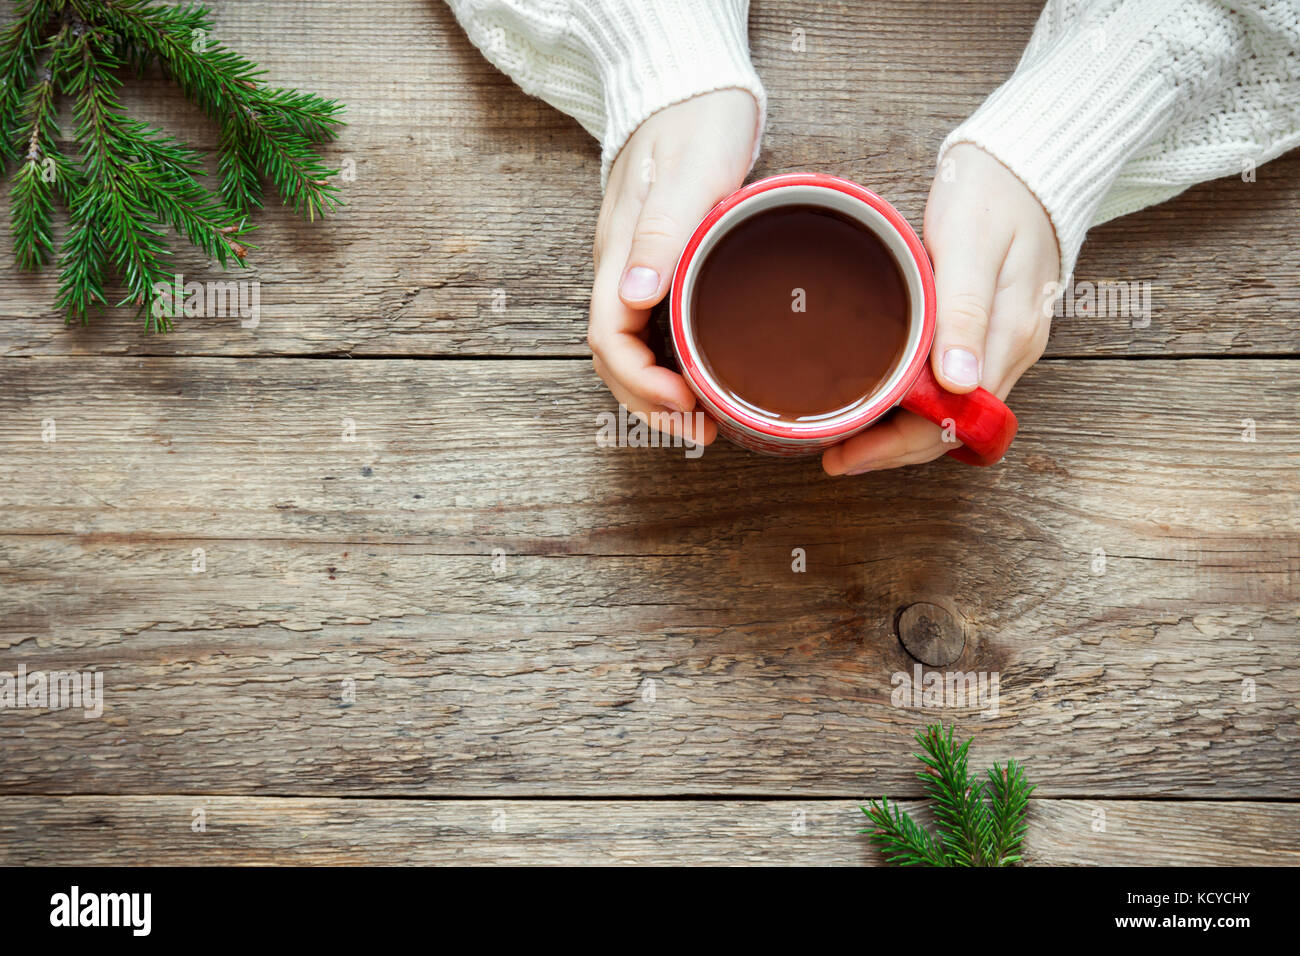 Female Hands Holding Red Mug Of Hot Chocolate Coffee On Rustic Wooden Background With Cristmas Fir Tree Branch Copy Space Cozy Homemade Winter